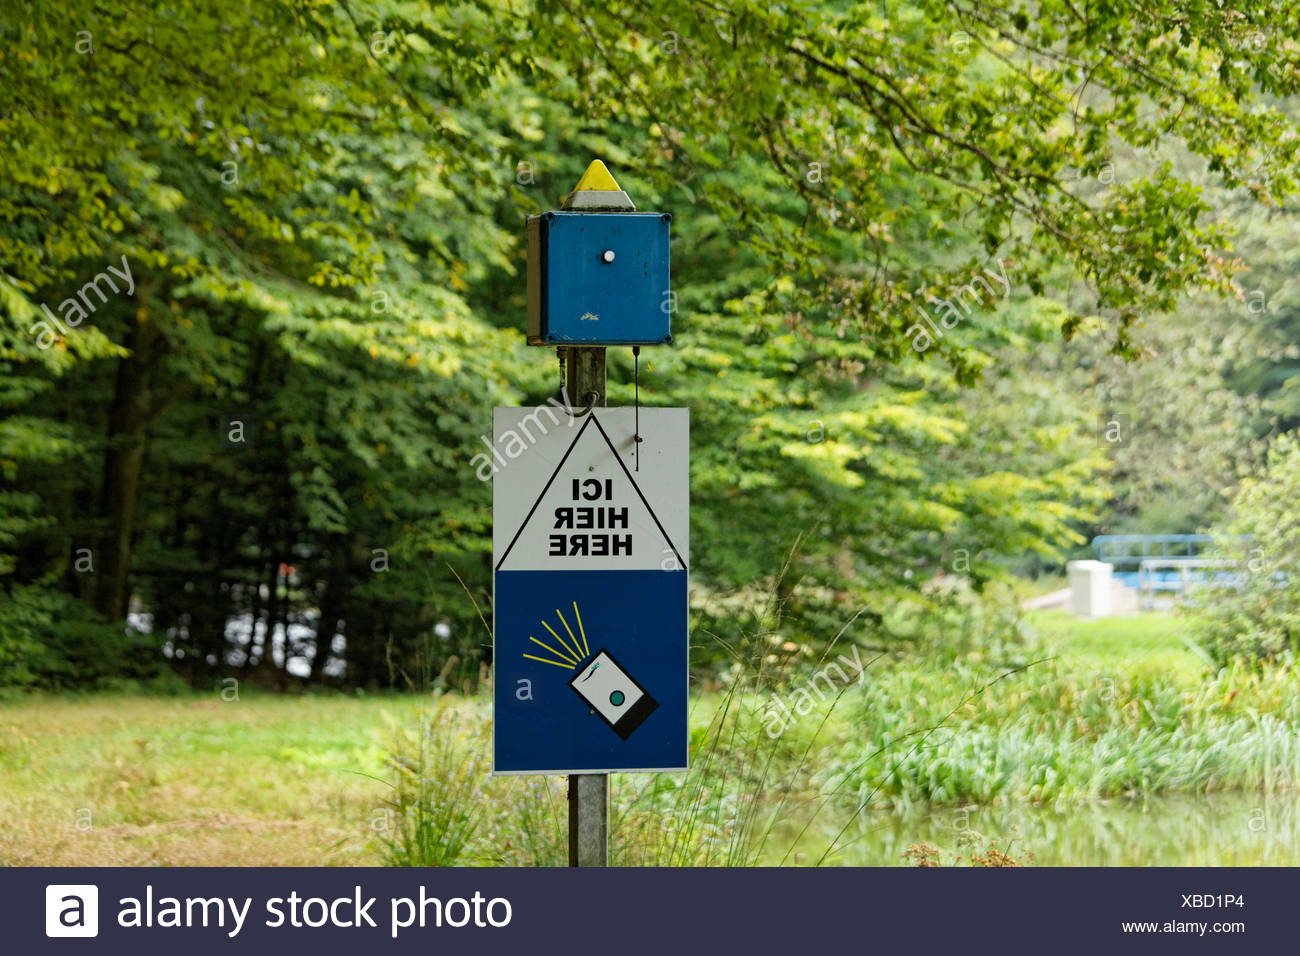 Radio receiver for the remote control of the sluices, Void-de Girancourt, Lorraine, Département Vosges, France - Stock Image